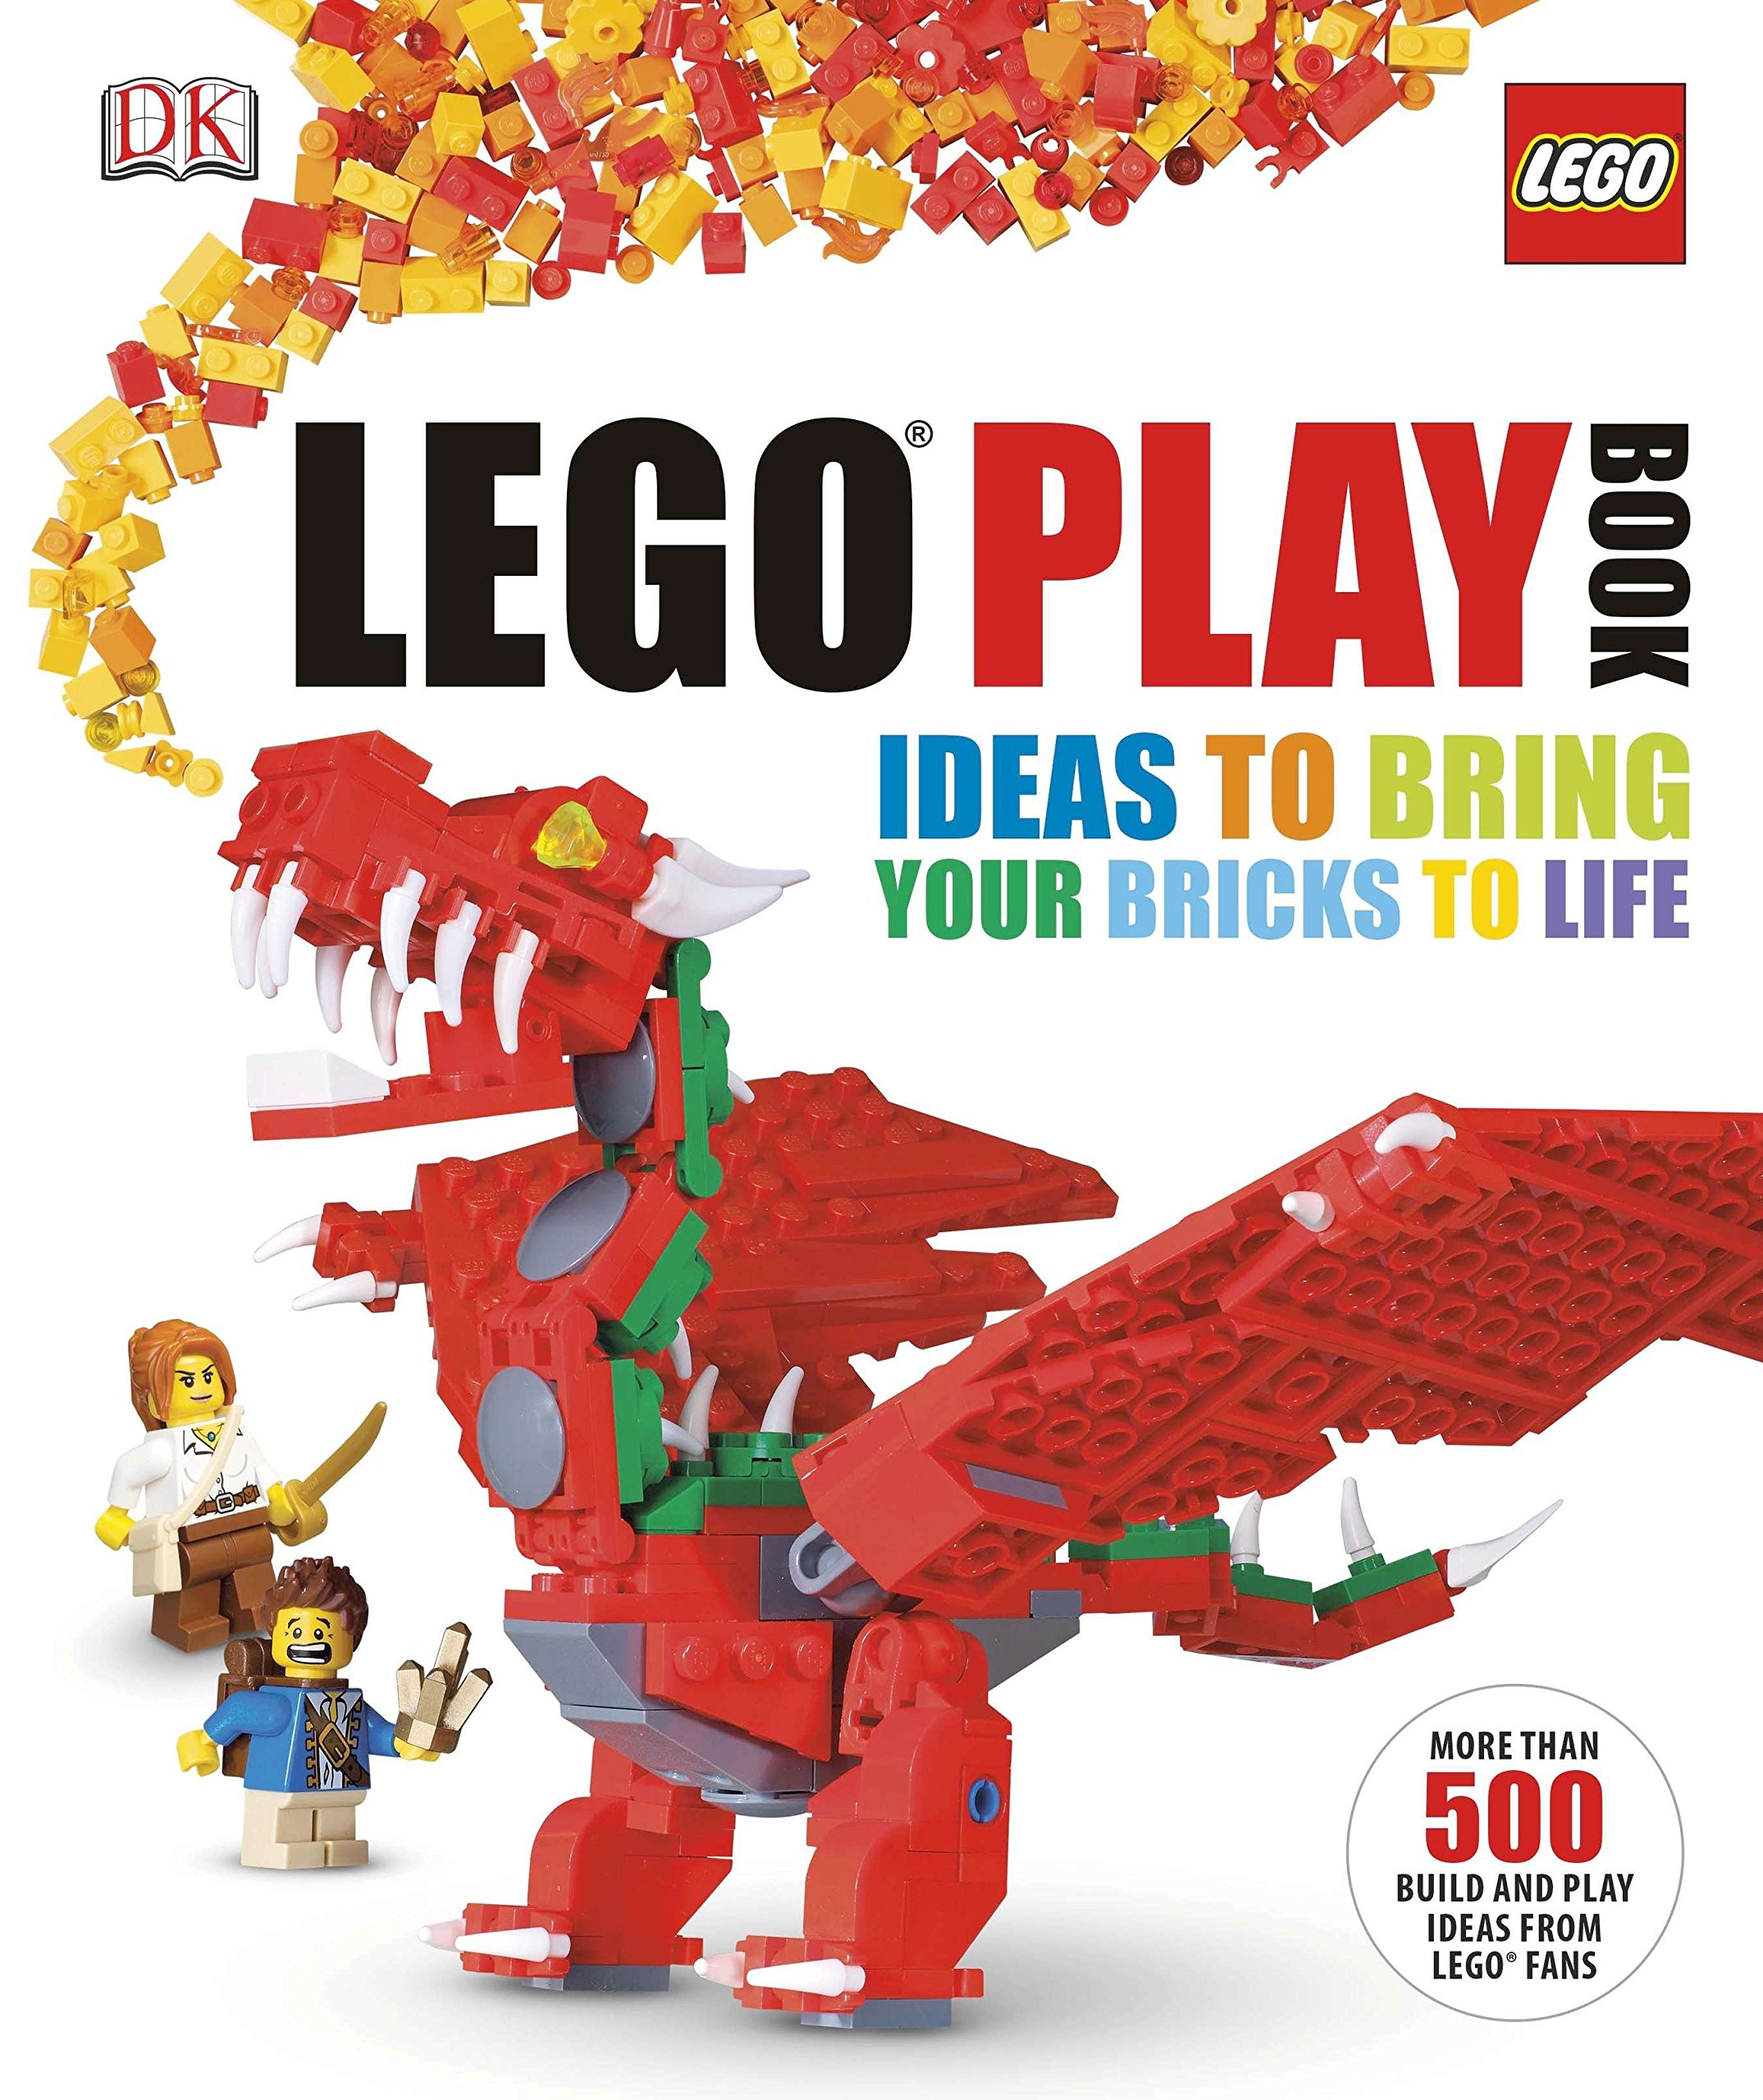 LEGO Play Book: Ideas to Bring Your Bricks to Life by DK Publishing Dorling Kindersley (Image #1)